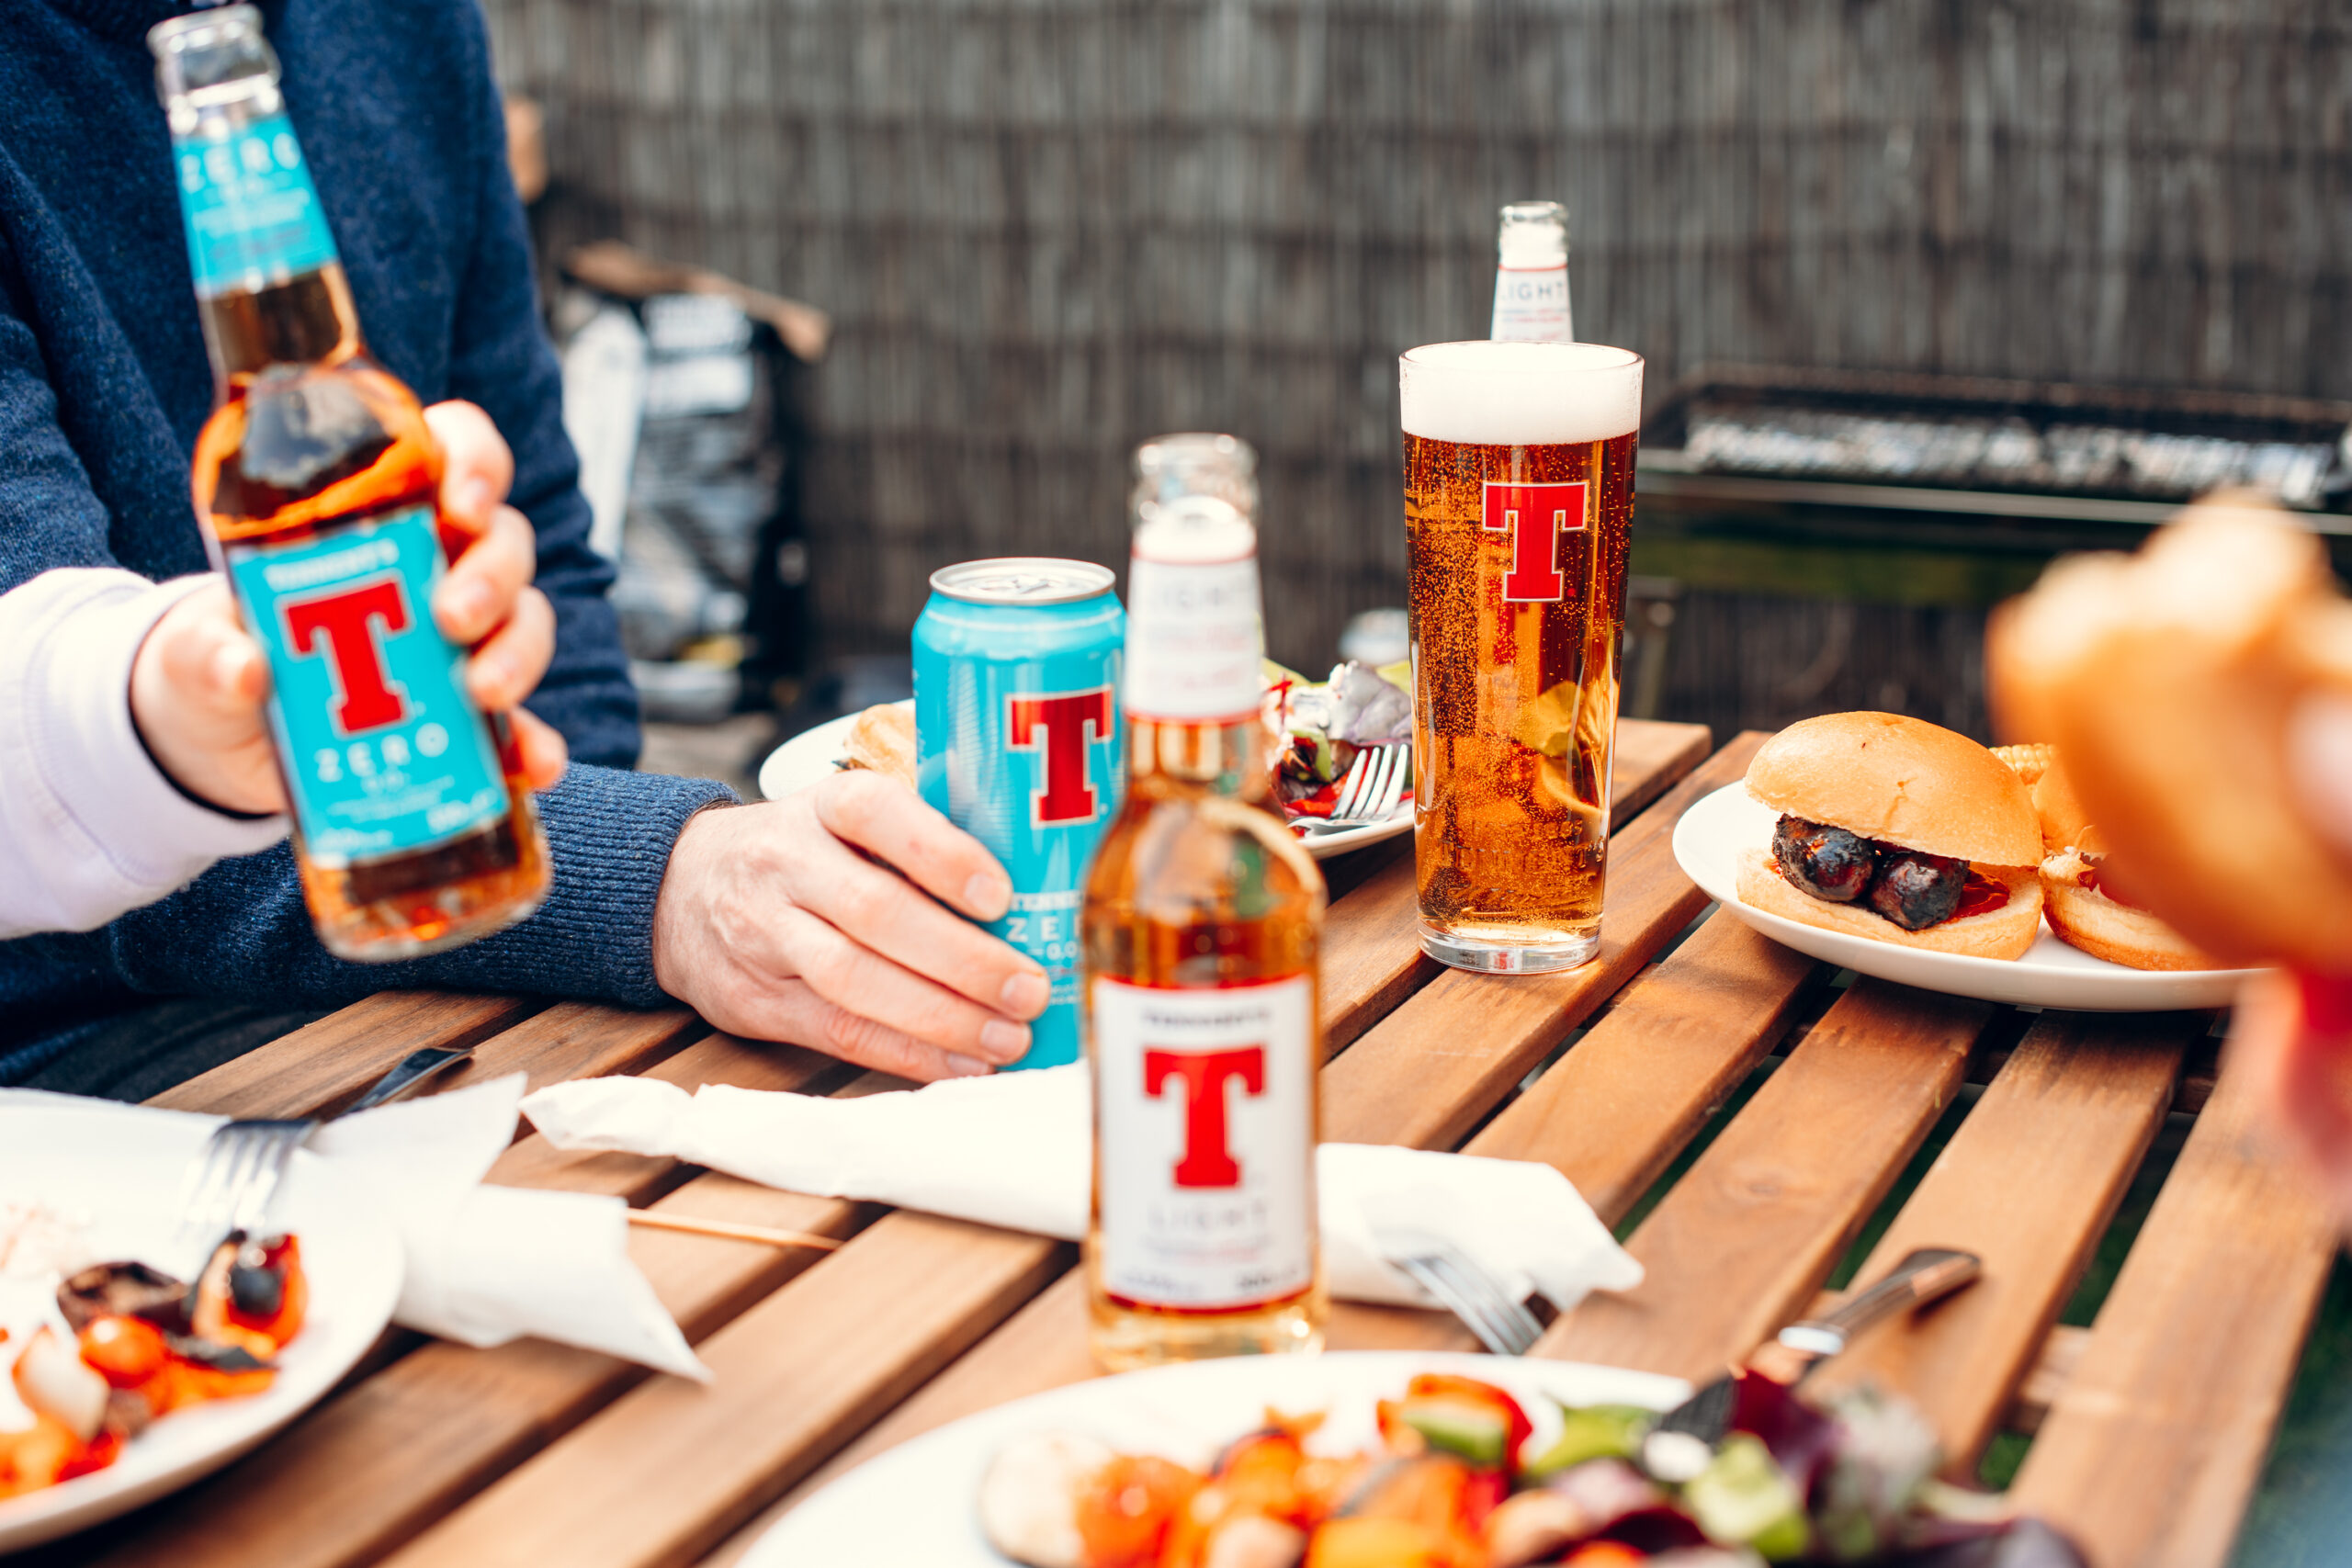 tennents-at-home-ryanjohnstonco-53